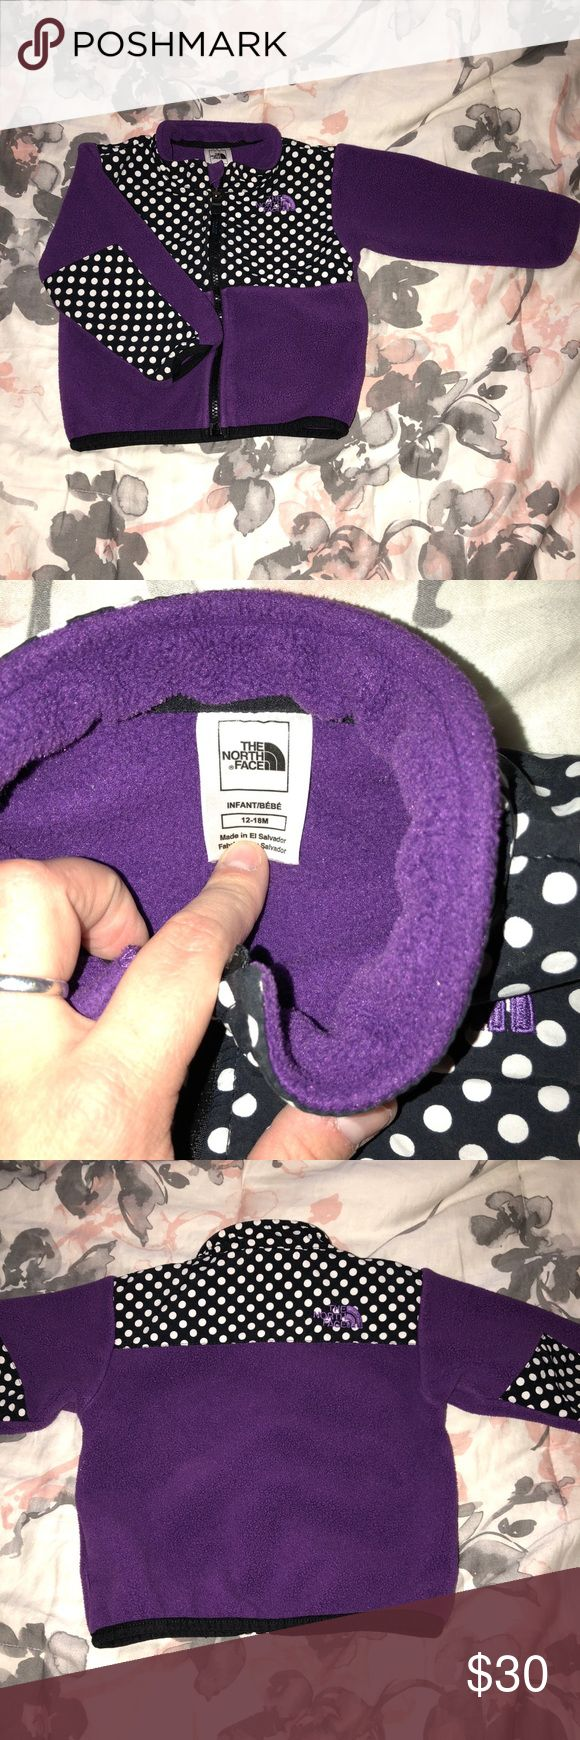 The North face zip up 12-18 mts Purple/ Polka Dot The North Face Zip Up 12-18 months Purple and Black and white Polka Dot   In perfect condition.  Price is negotiable. Please make an offer 🤗  My daughter loved this until we got her one of the fuzzy Northface's.  Everything in My Closet comes from a Pet free🐶🐱Smoke Free 🚭 Clean Loving Home🏡 👨👩👧👦. Open to reasonable offers ♻️ Depending on the time your order is placed, 1-2 day shipping📦🛍 Contact we me with any questions ⁉️ Happy…